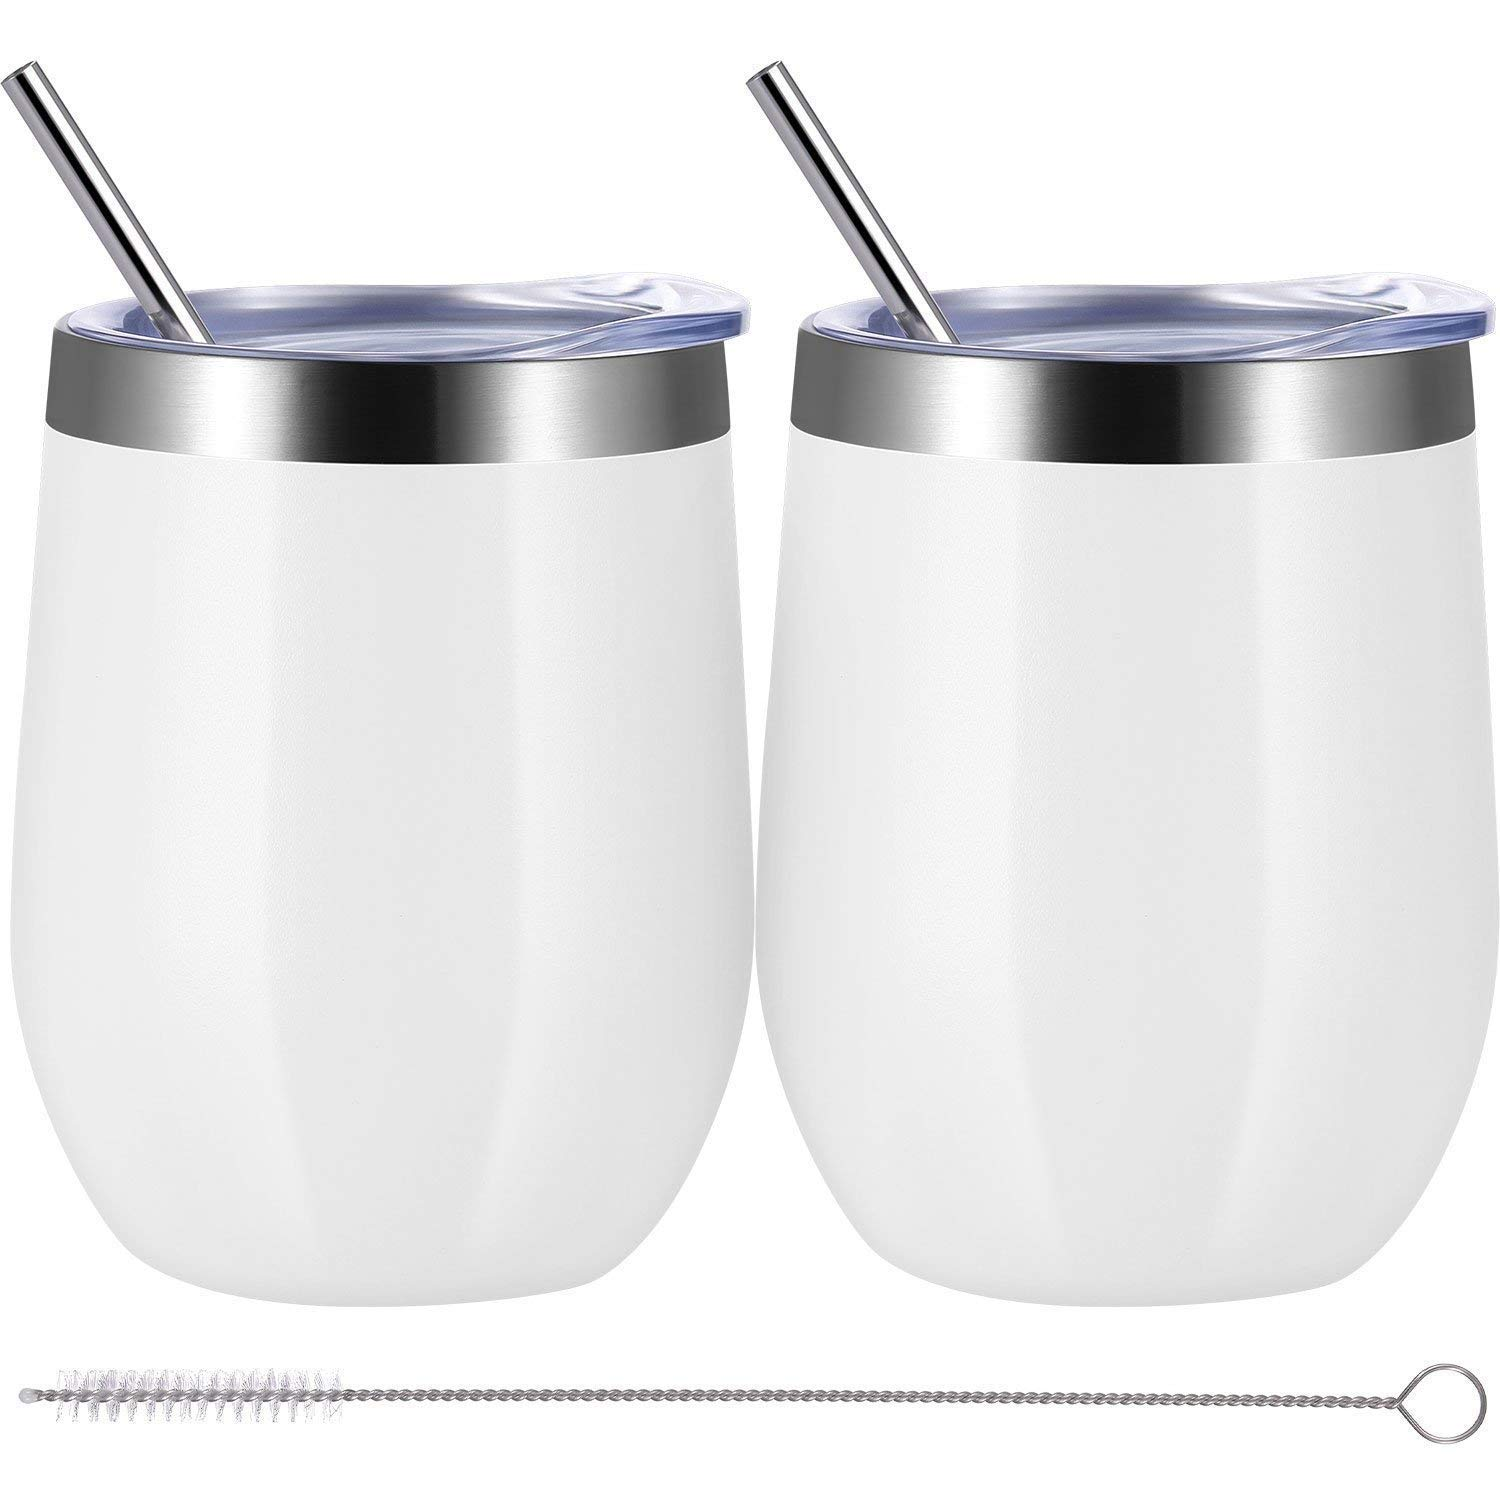 Adubor Coffee Tumbler Insulated wine Glass 12oz Stainless Steel Double Wall Vacuum Insulated Tumbler Cup with Lids, Drink-Ware Glasses for Wine Bright White, 2 Pack by Adubor